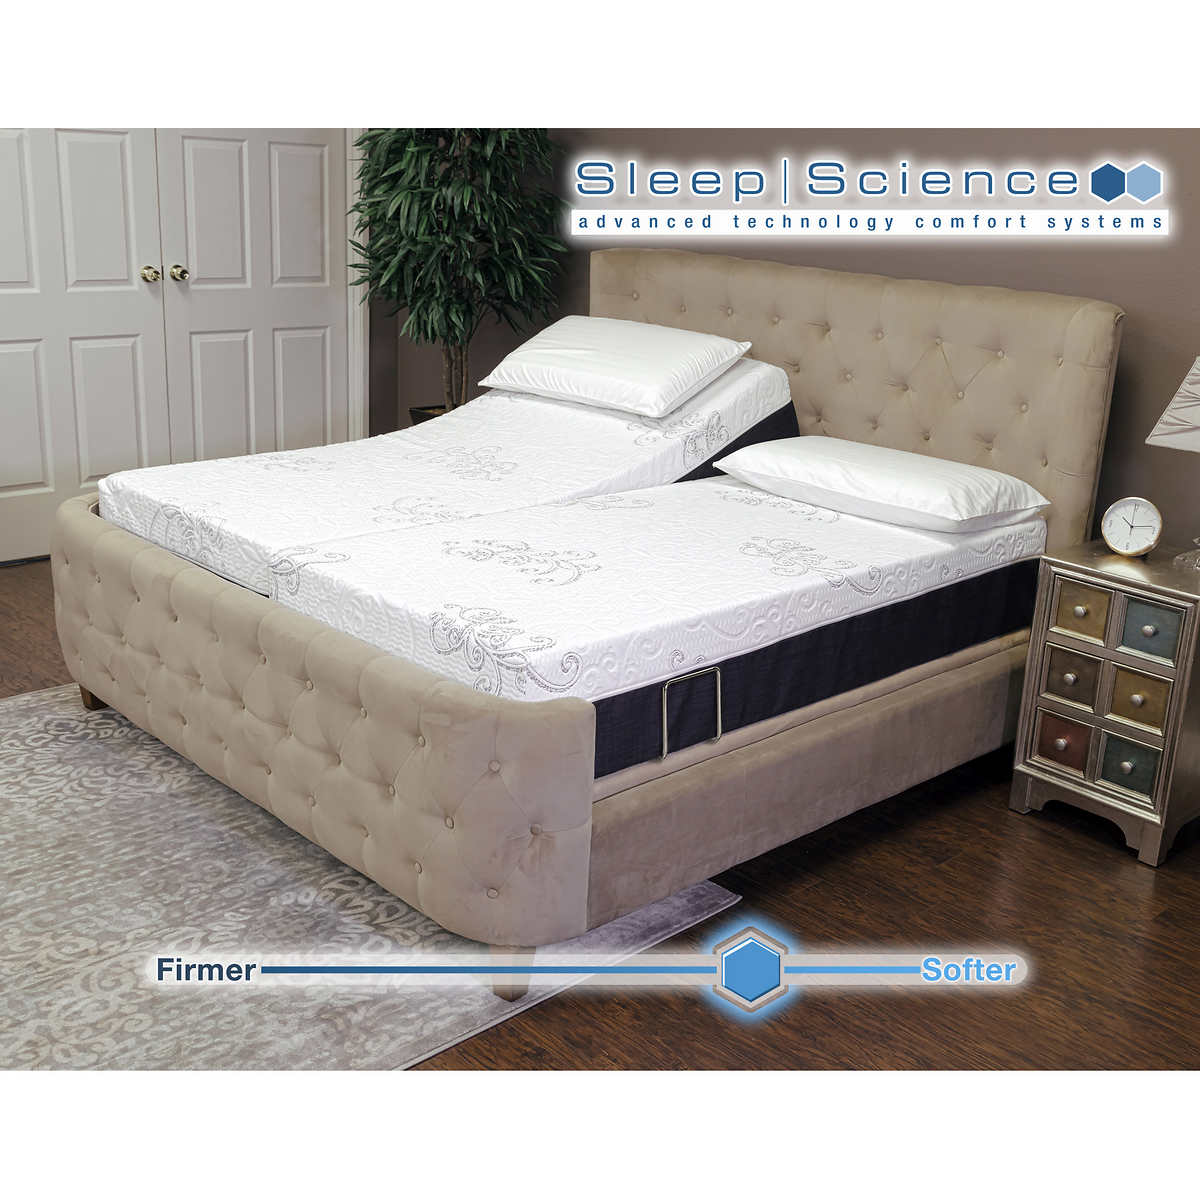 "Sleep Science 12"" Active Loft Split King Plush Memory Foam Mattress with  Adjustable Power Base. Item #1181120. Click to Zoom"